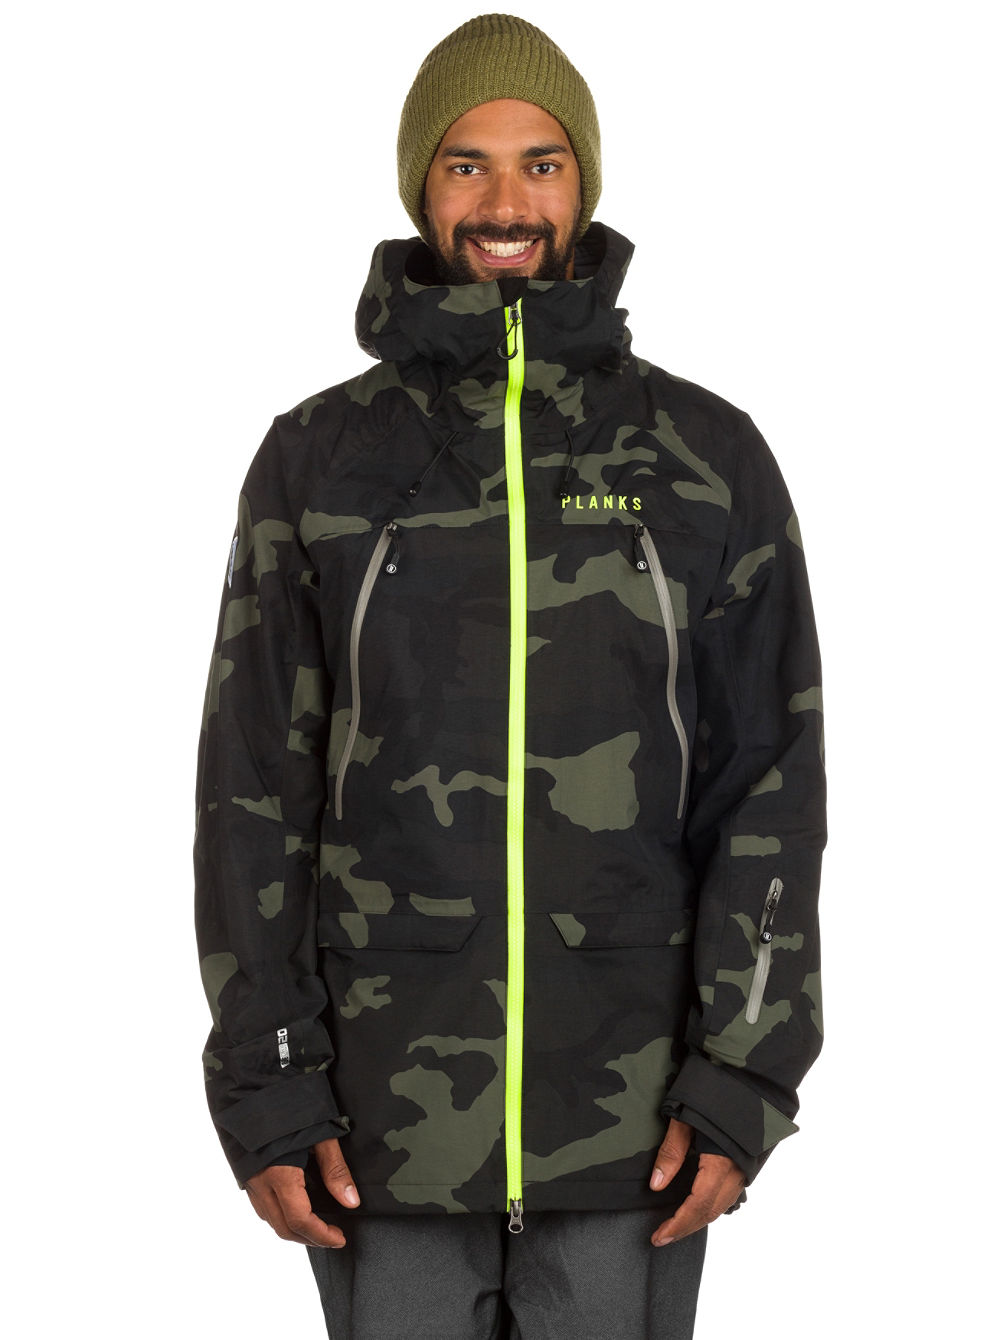 The Yeti Hunter 3 Layer Chaqueta